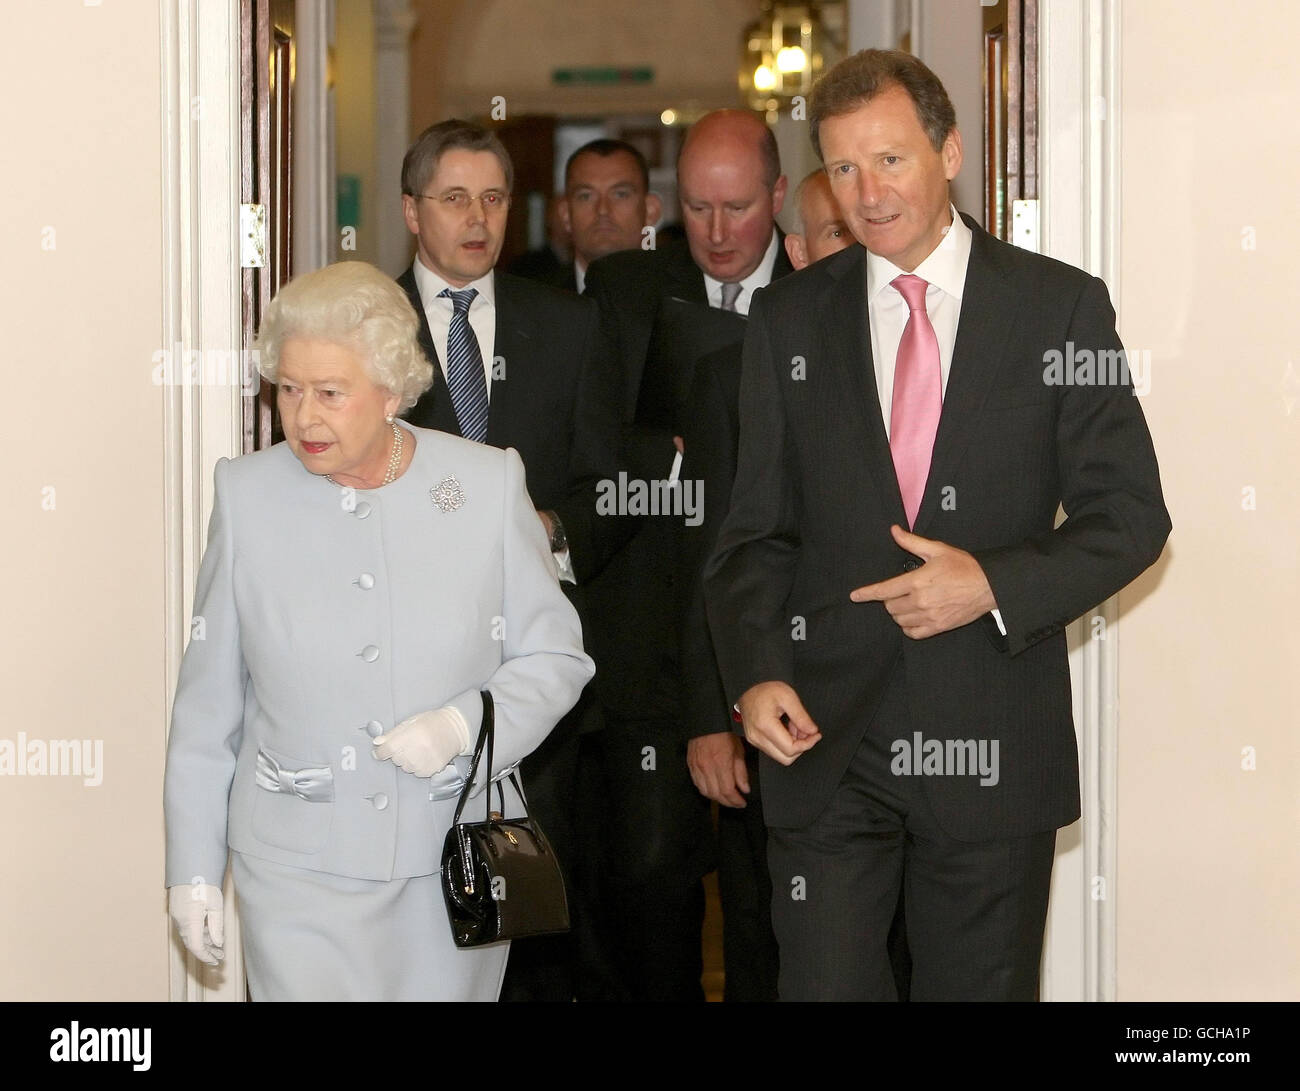 Queen visits Cabinet Office Stock Photo